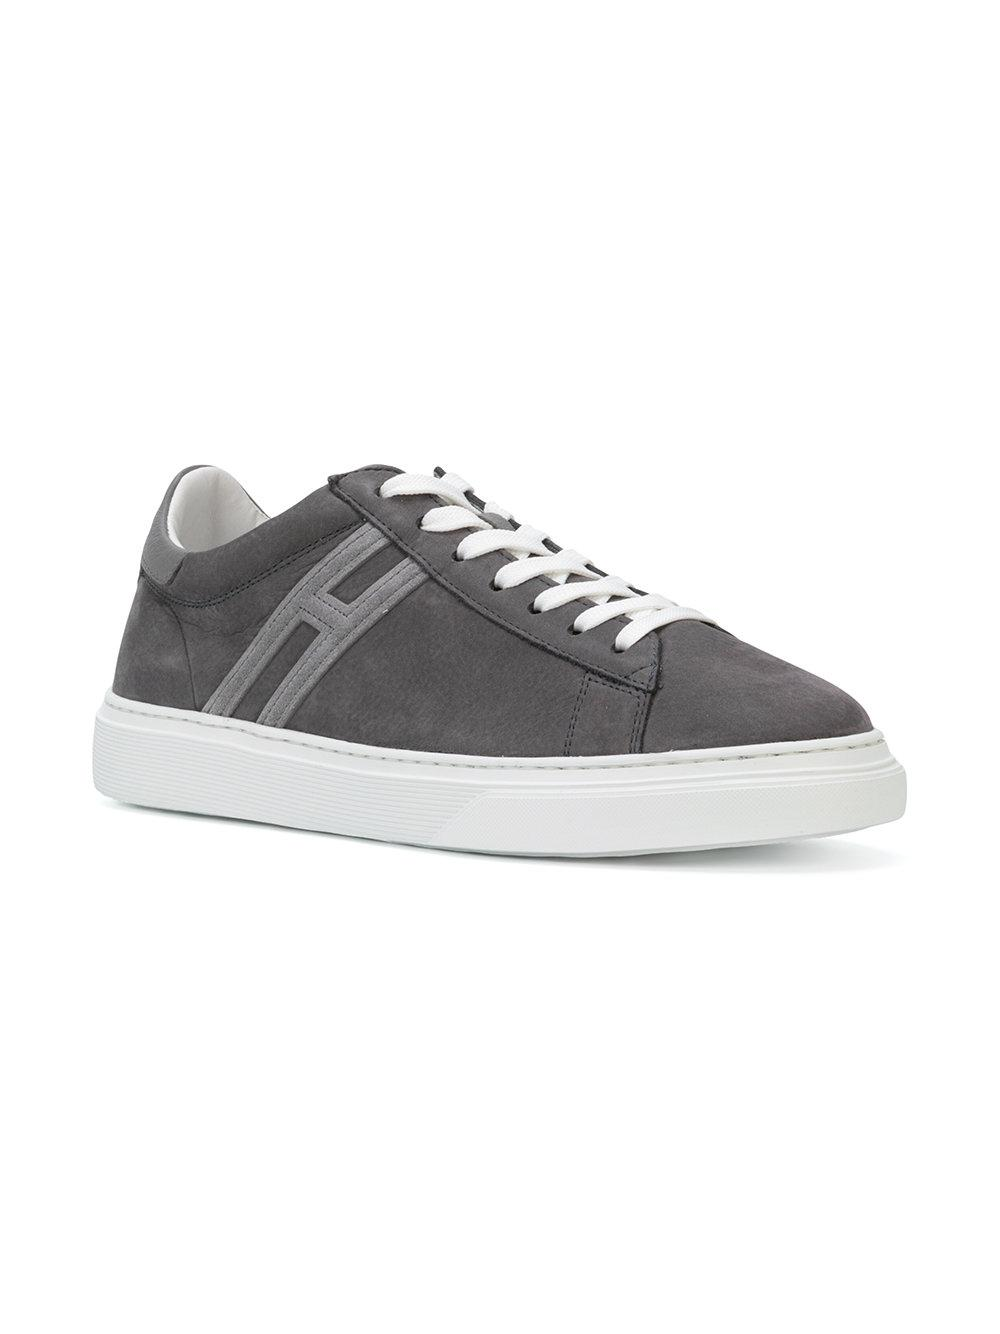 logo stitched sneakers - Grey Hogan ByjQBBeXo3